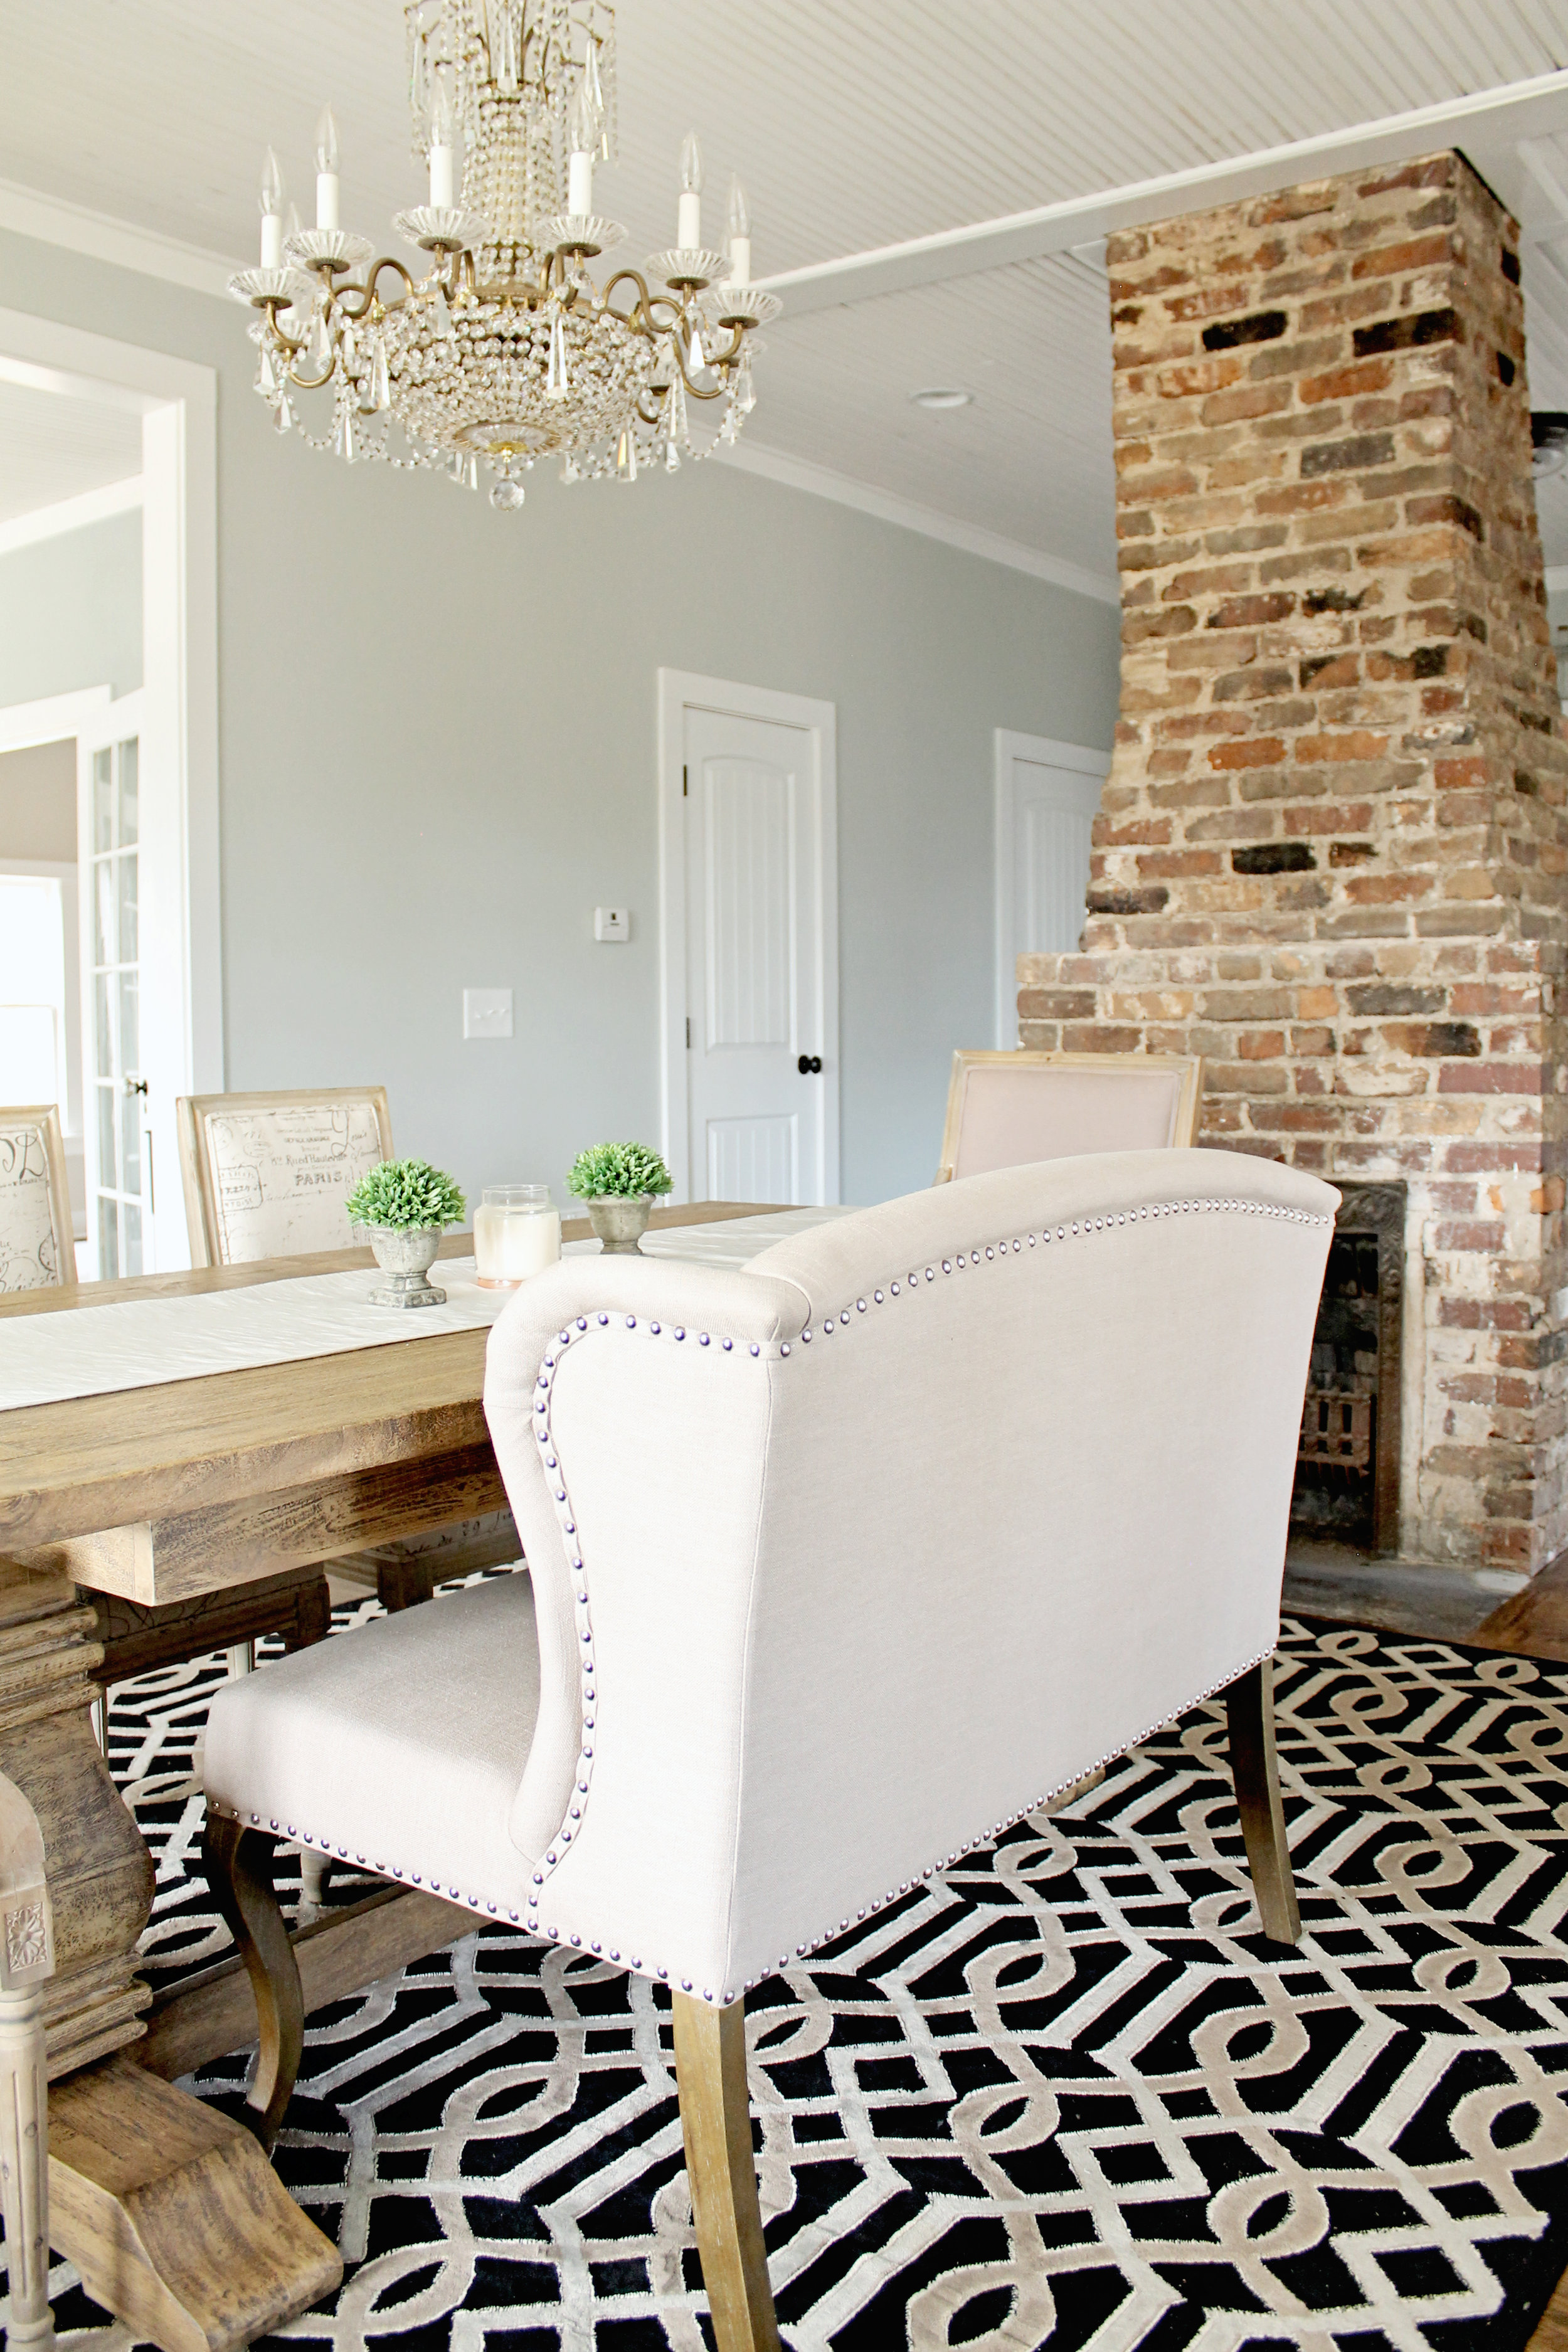 Elizabeth Burns Design | Family Farmhouse Renovation Before & Afters - fixer upper, Sherwin Williams Silver Strand, dining room inspiration, farm table